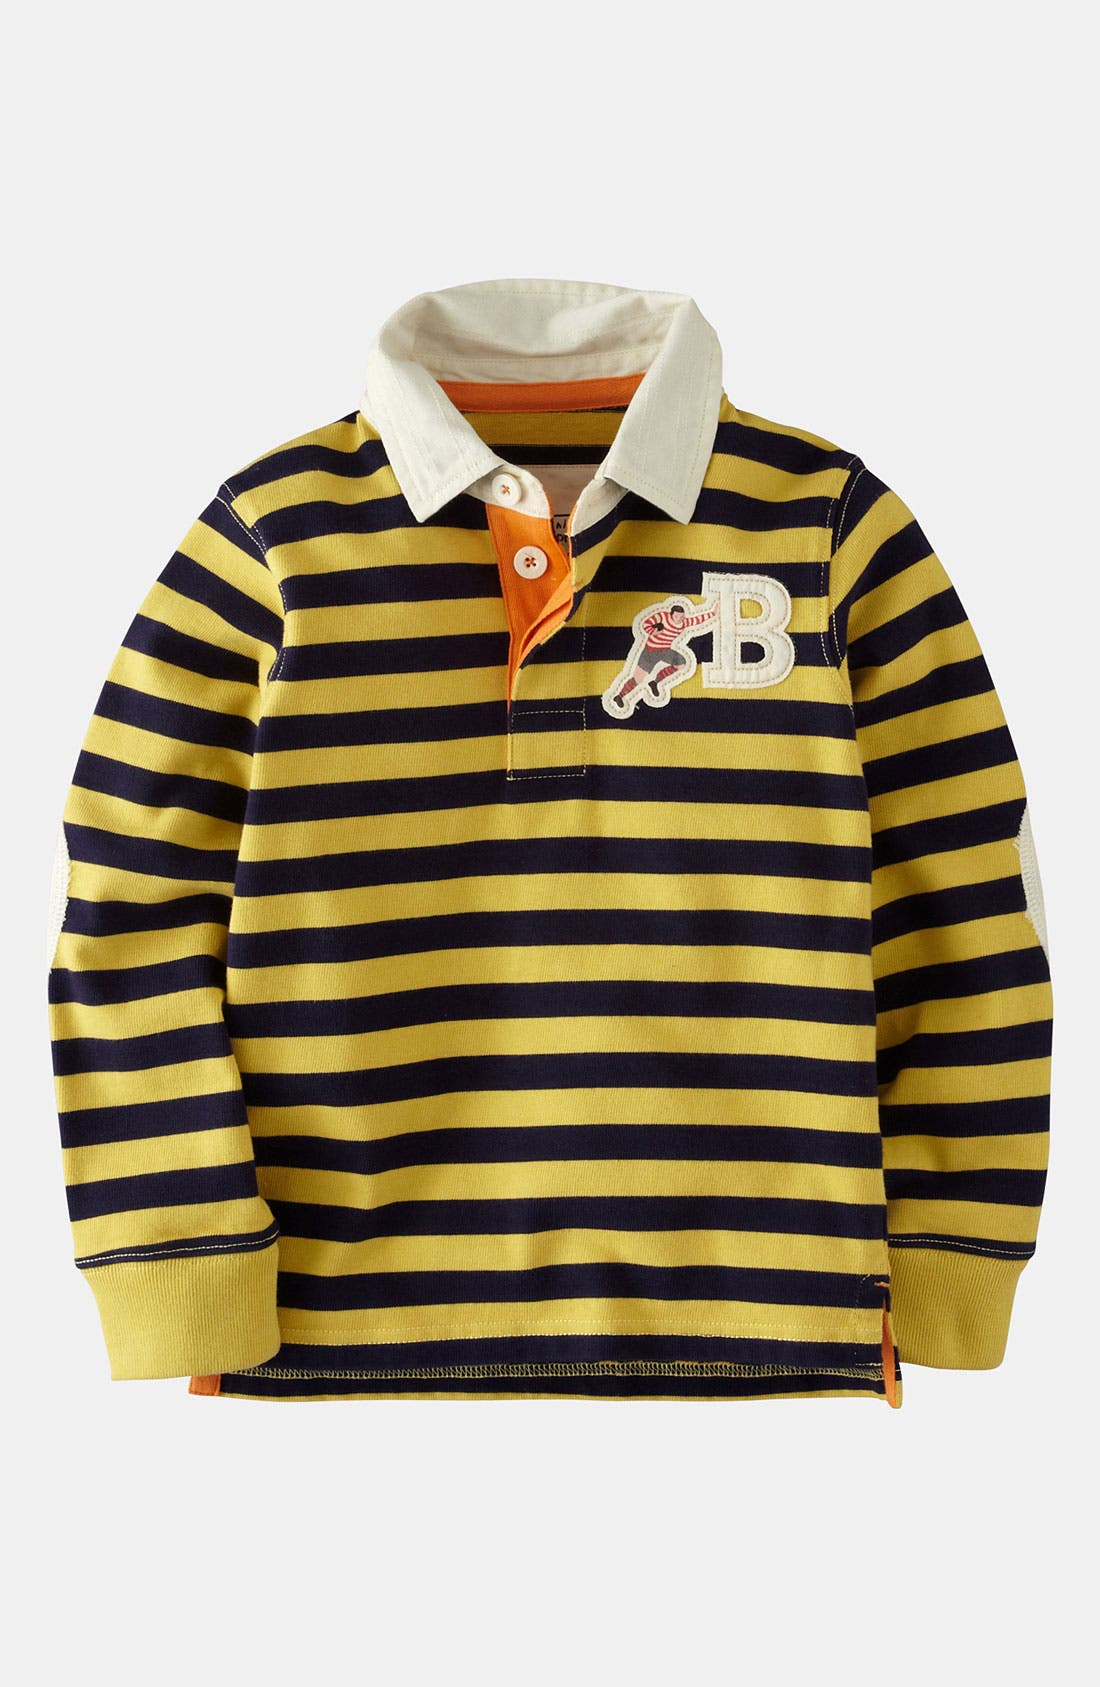 Main Image - Mini Boden 'Rugby' Shirt (Little Boys & Big Boys)